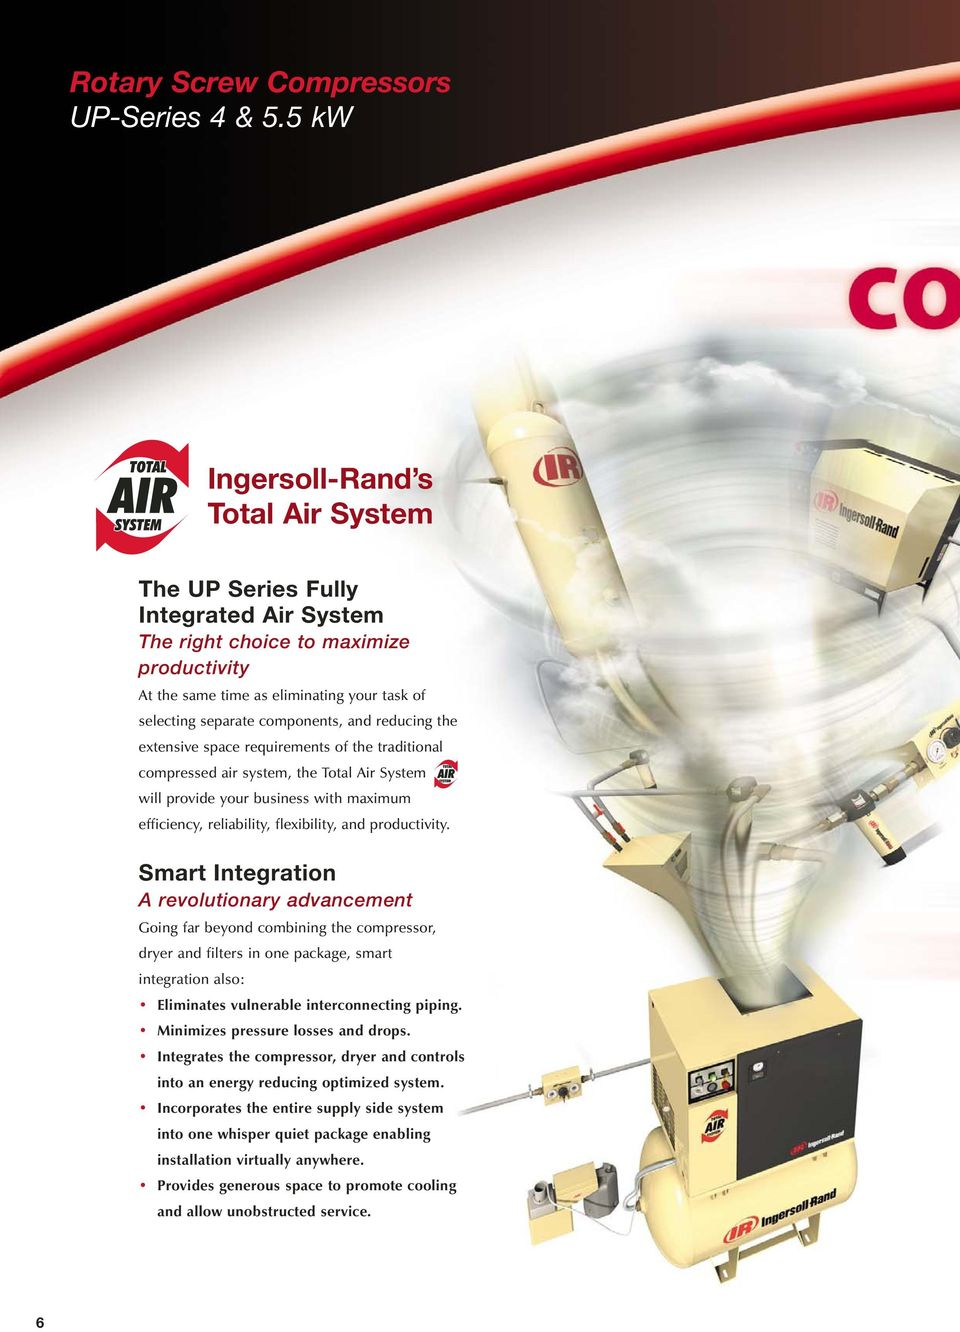 and reducing the extensive space requirements of the traditional compressed air system, the Total Air System TAS will provide your business with maximum efficiency, reliability, flexibility, and